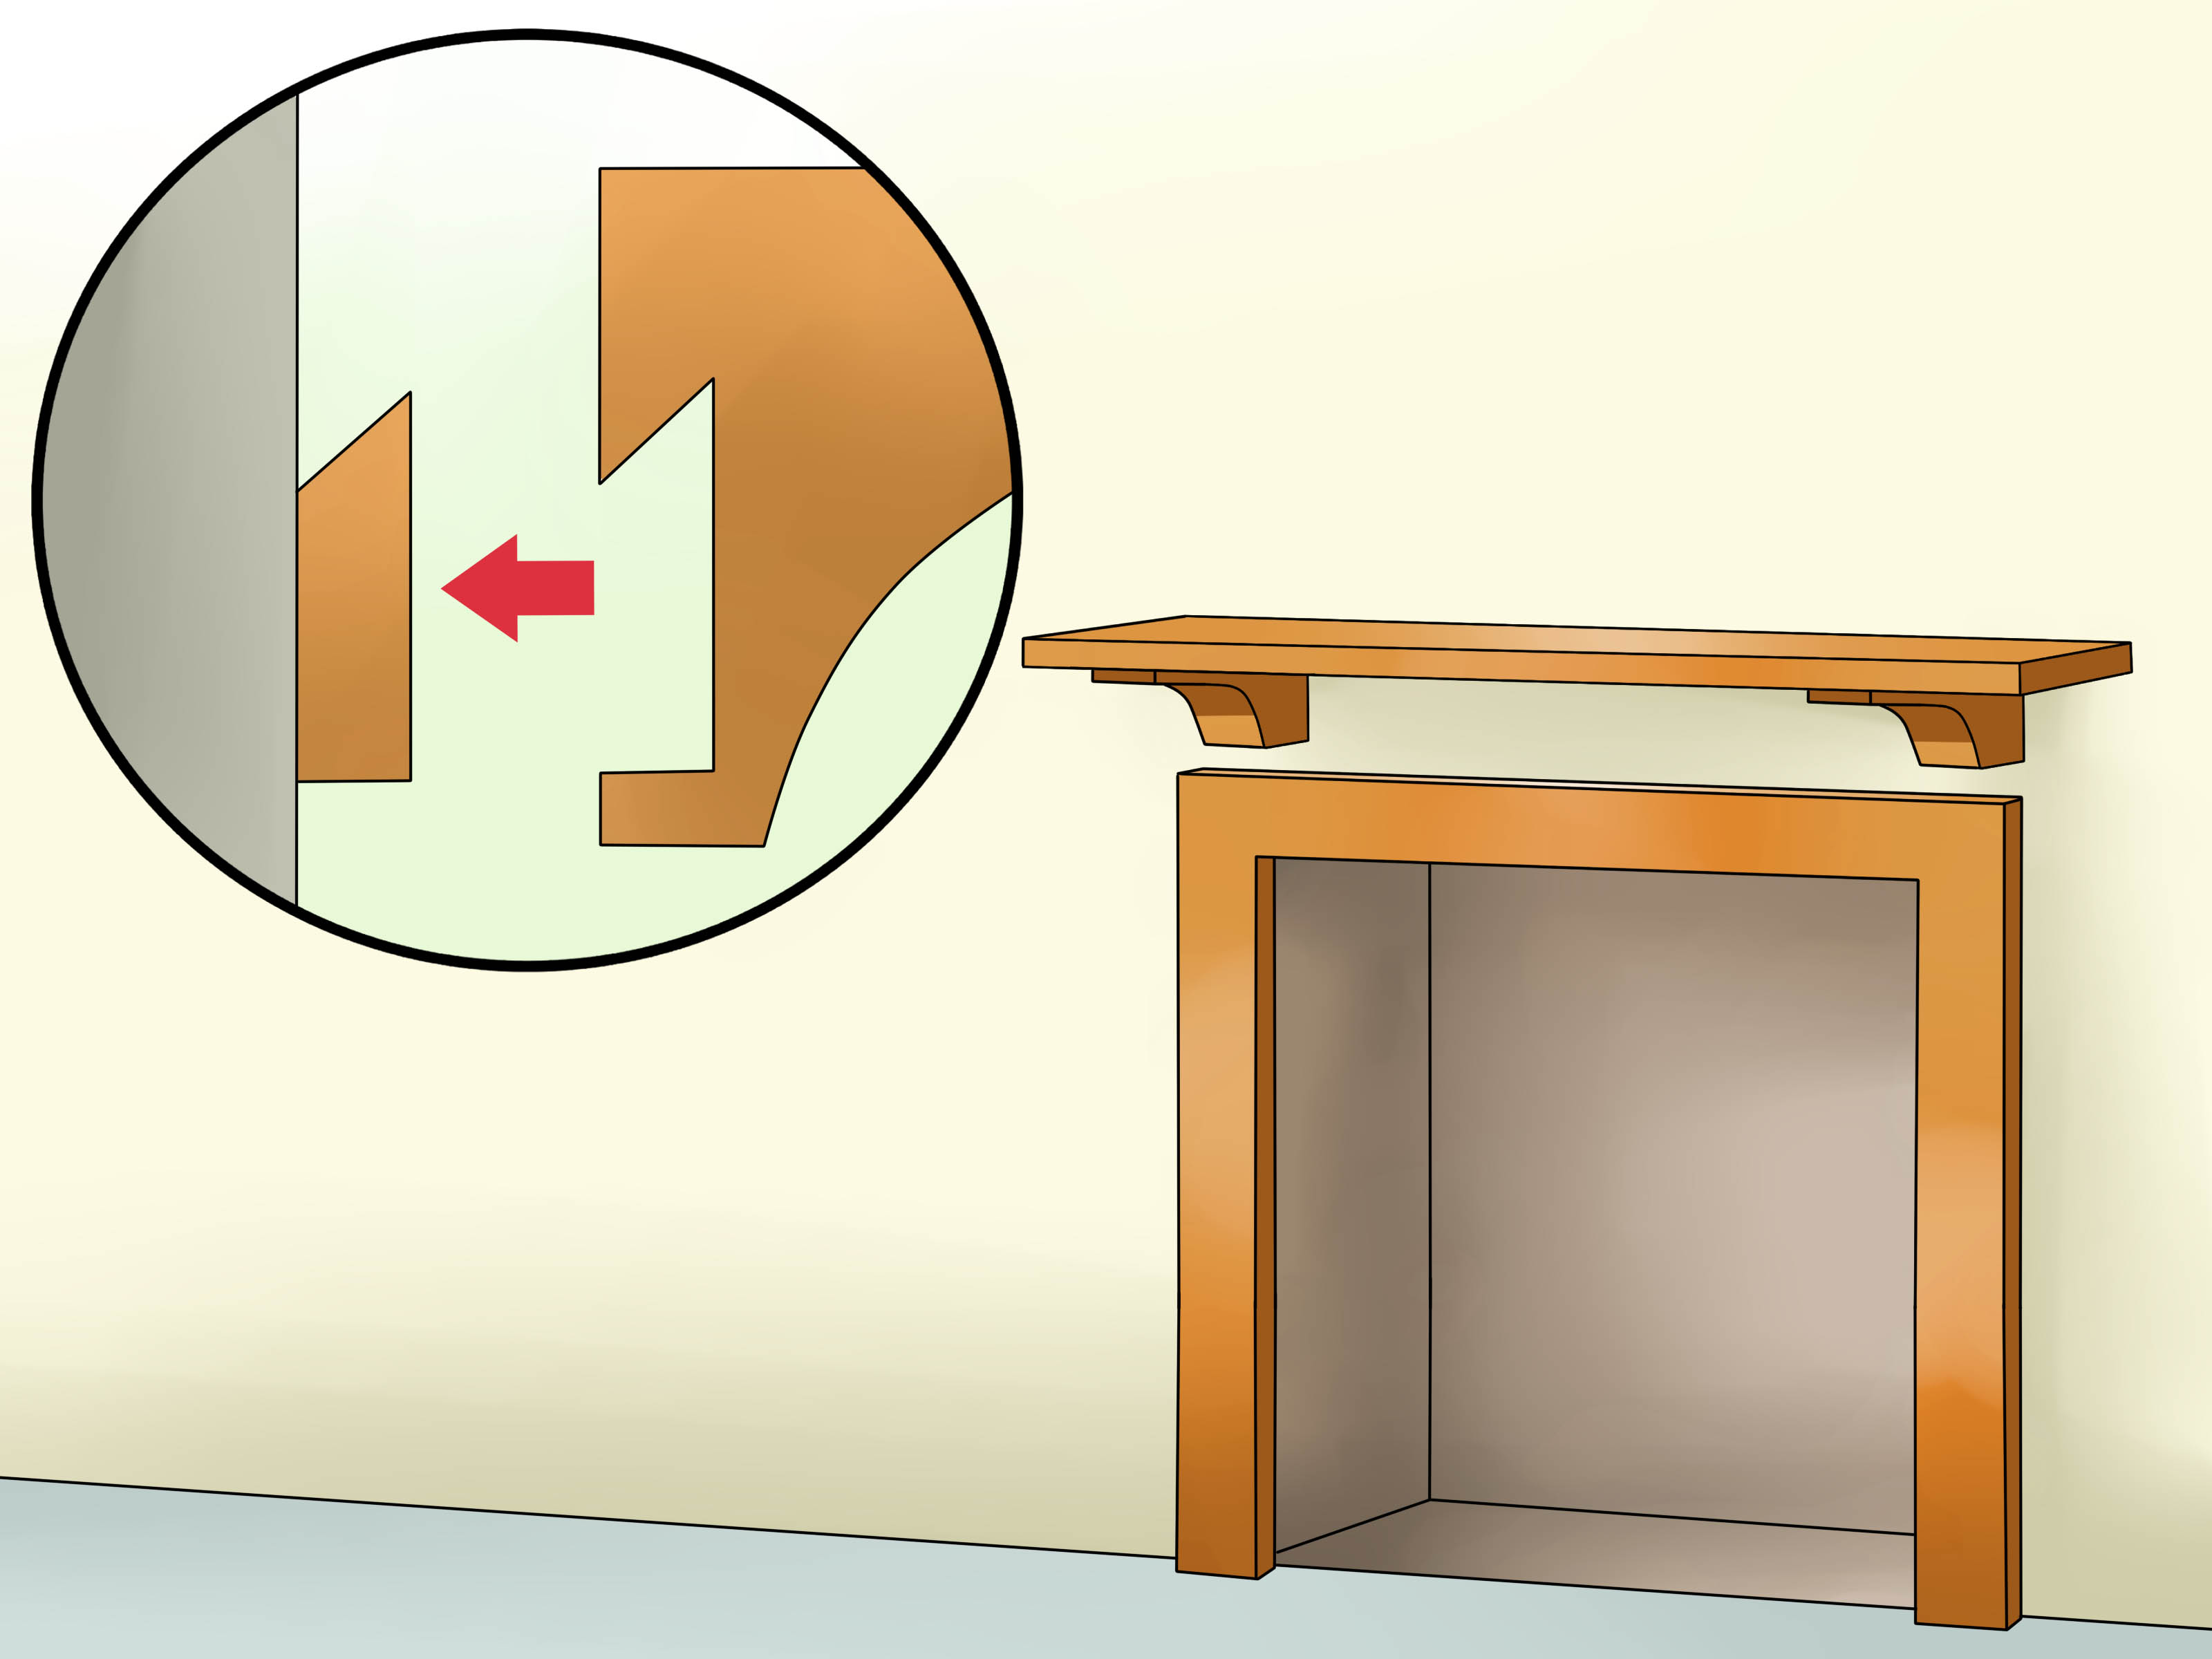 6 Ft Fireplace Mantel How To Install A Fireplace Mantel 14 Steps With Pictures